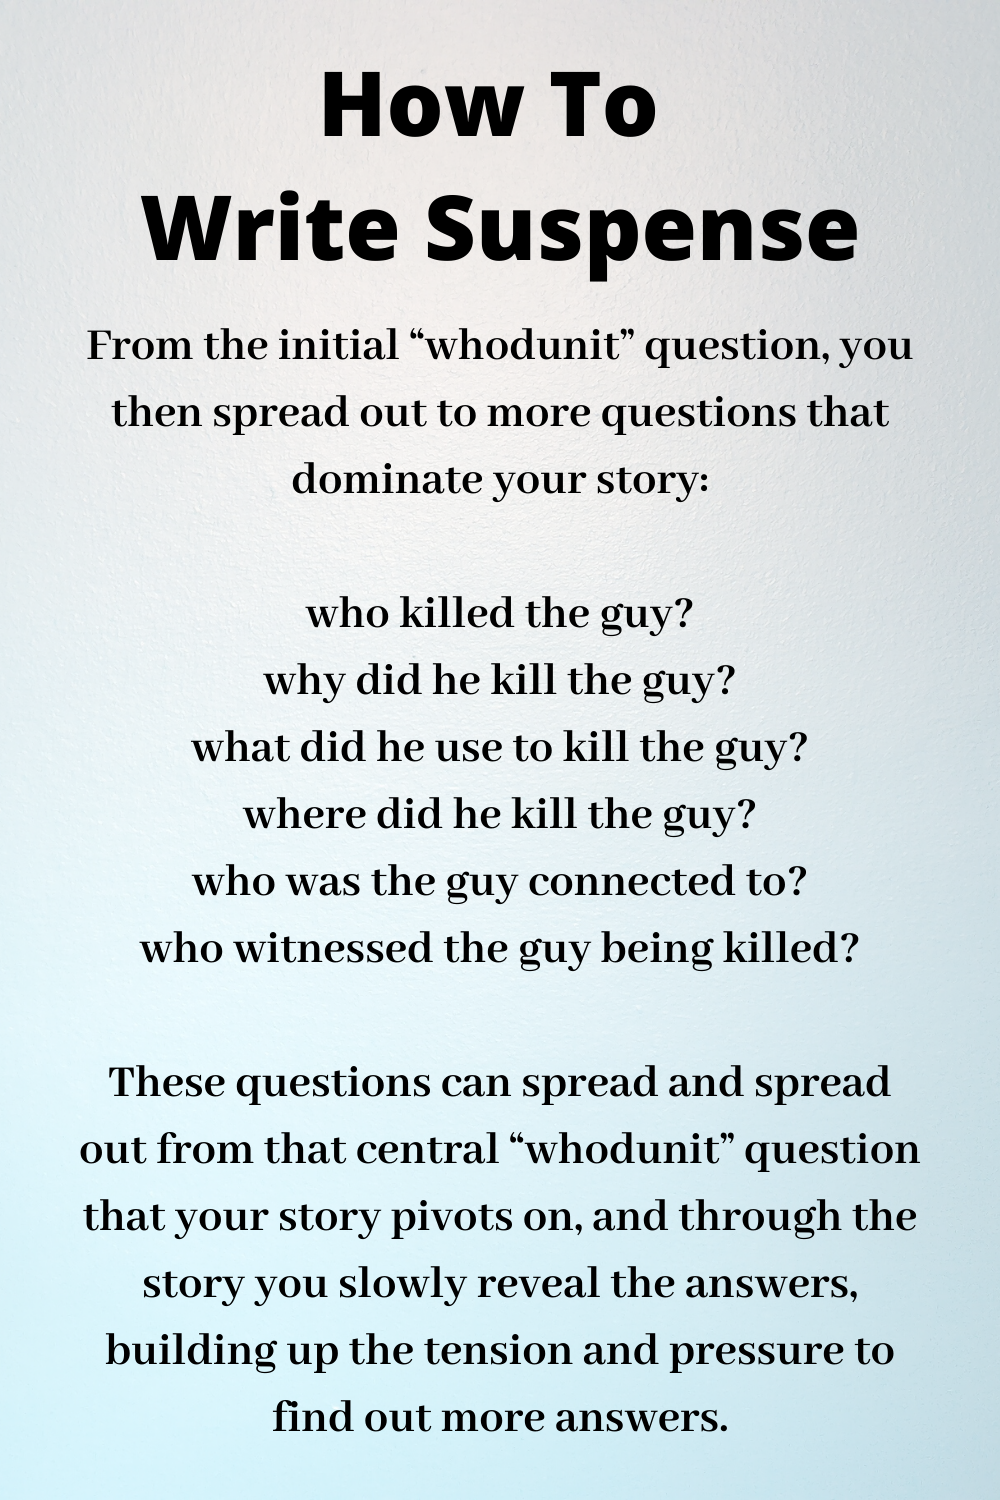 How To Write Suspense Mystery Writing Book Writing Tips Suspense Writing Prompts